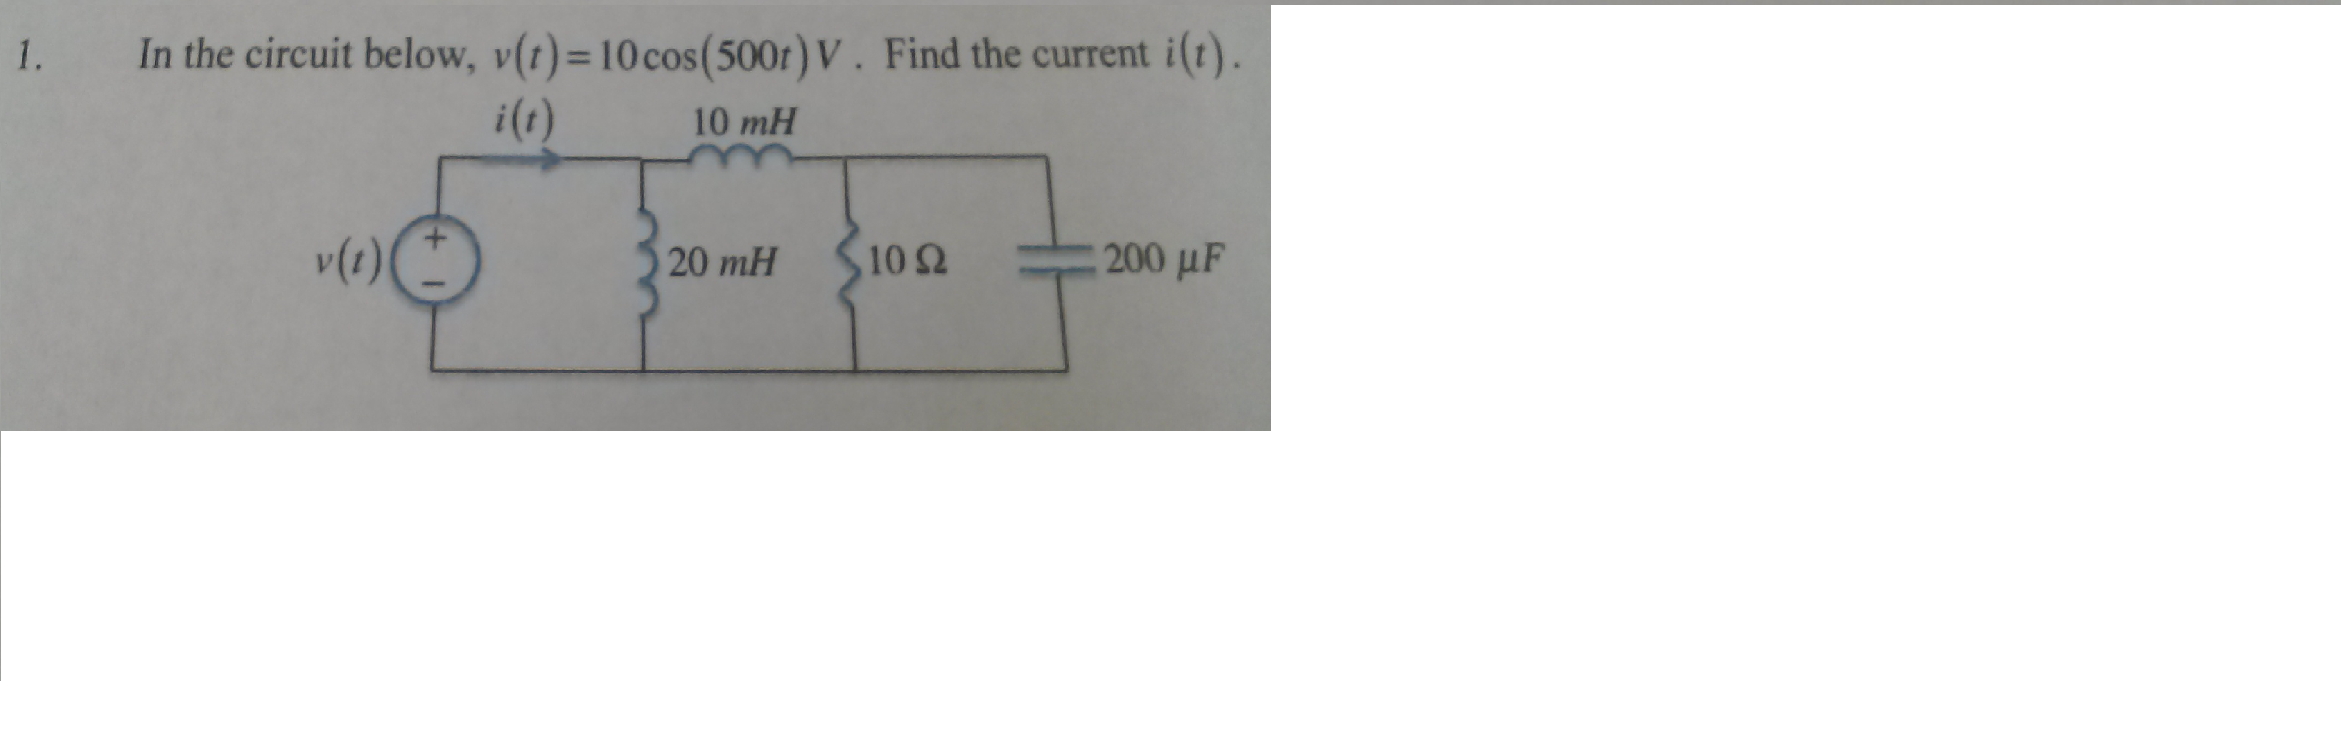 In the circuit below, v(t)= 10cos(500t) V . Find t